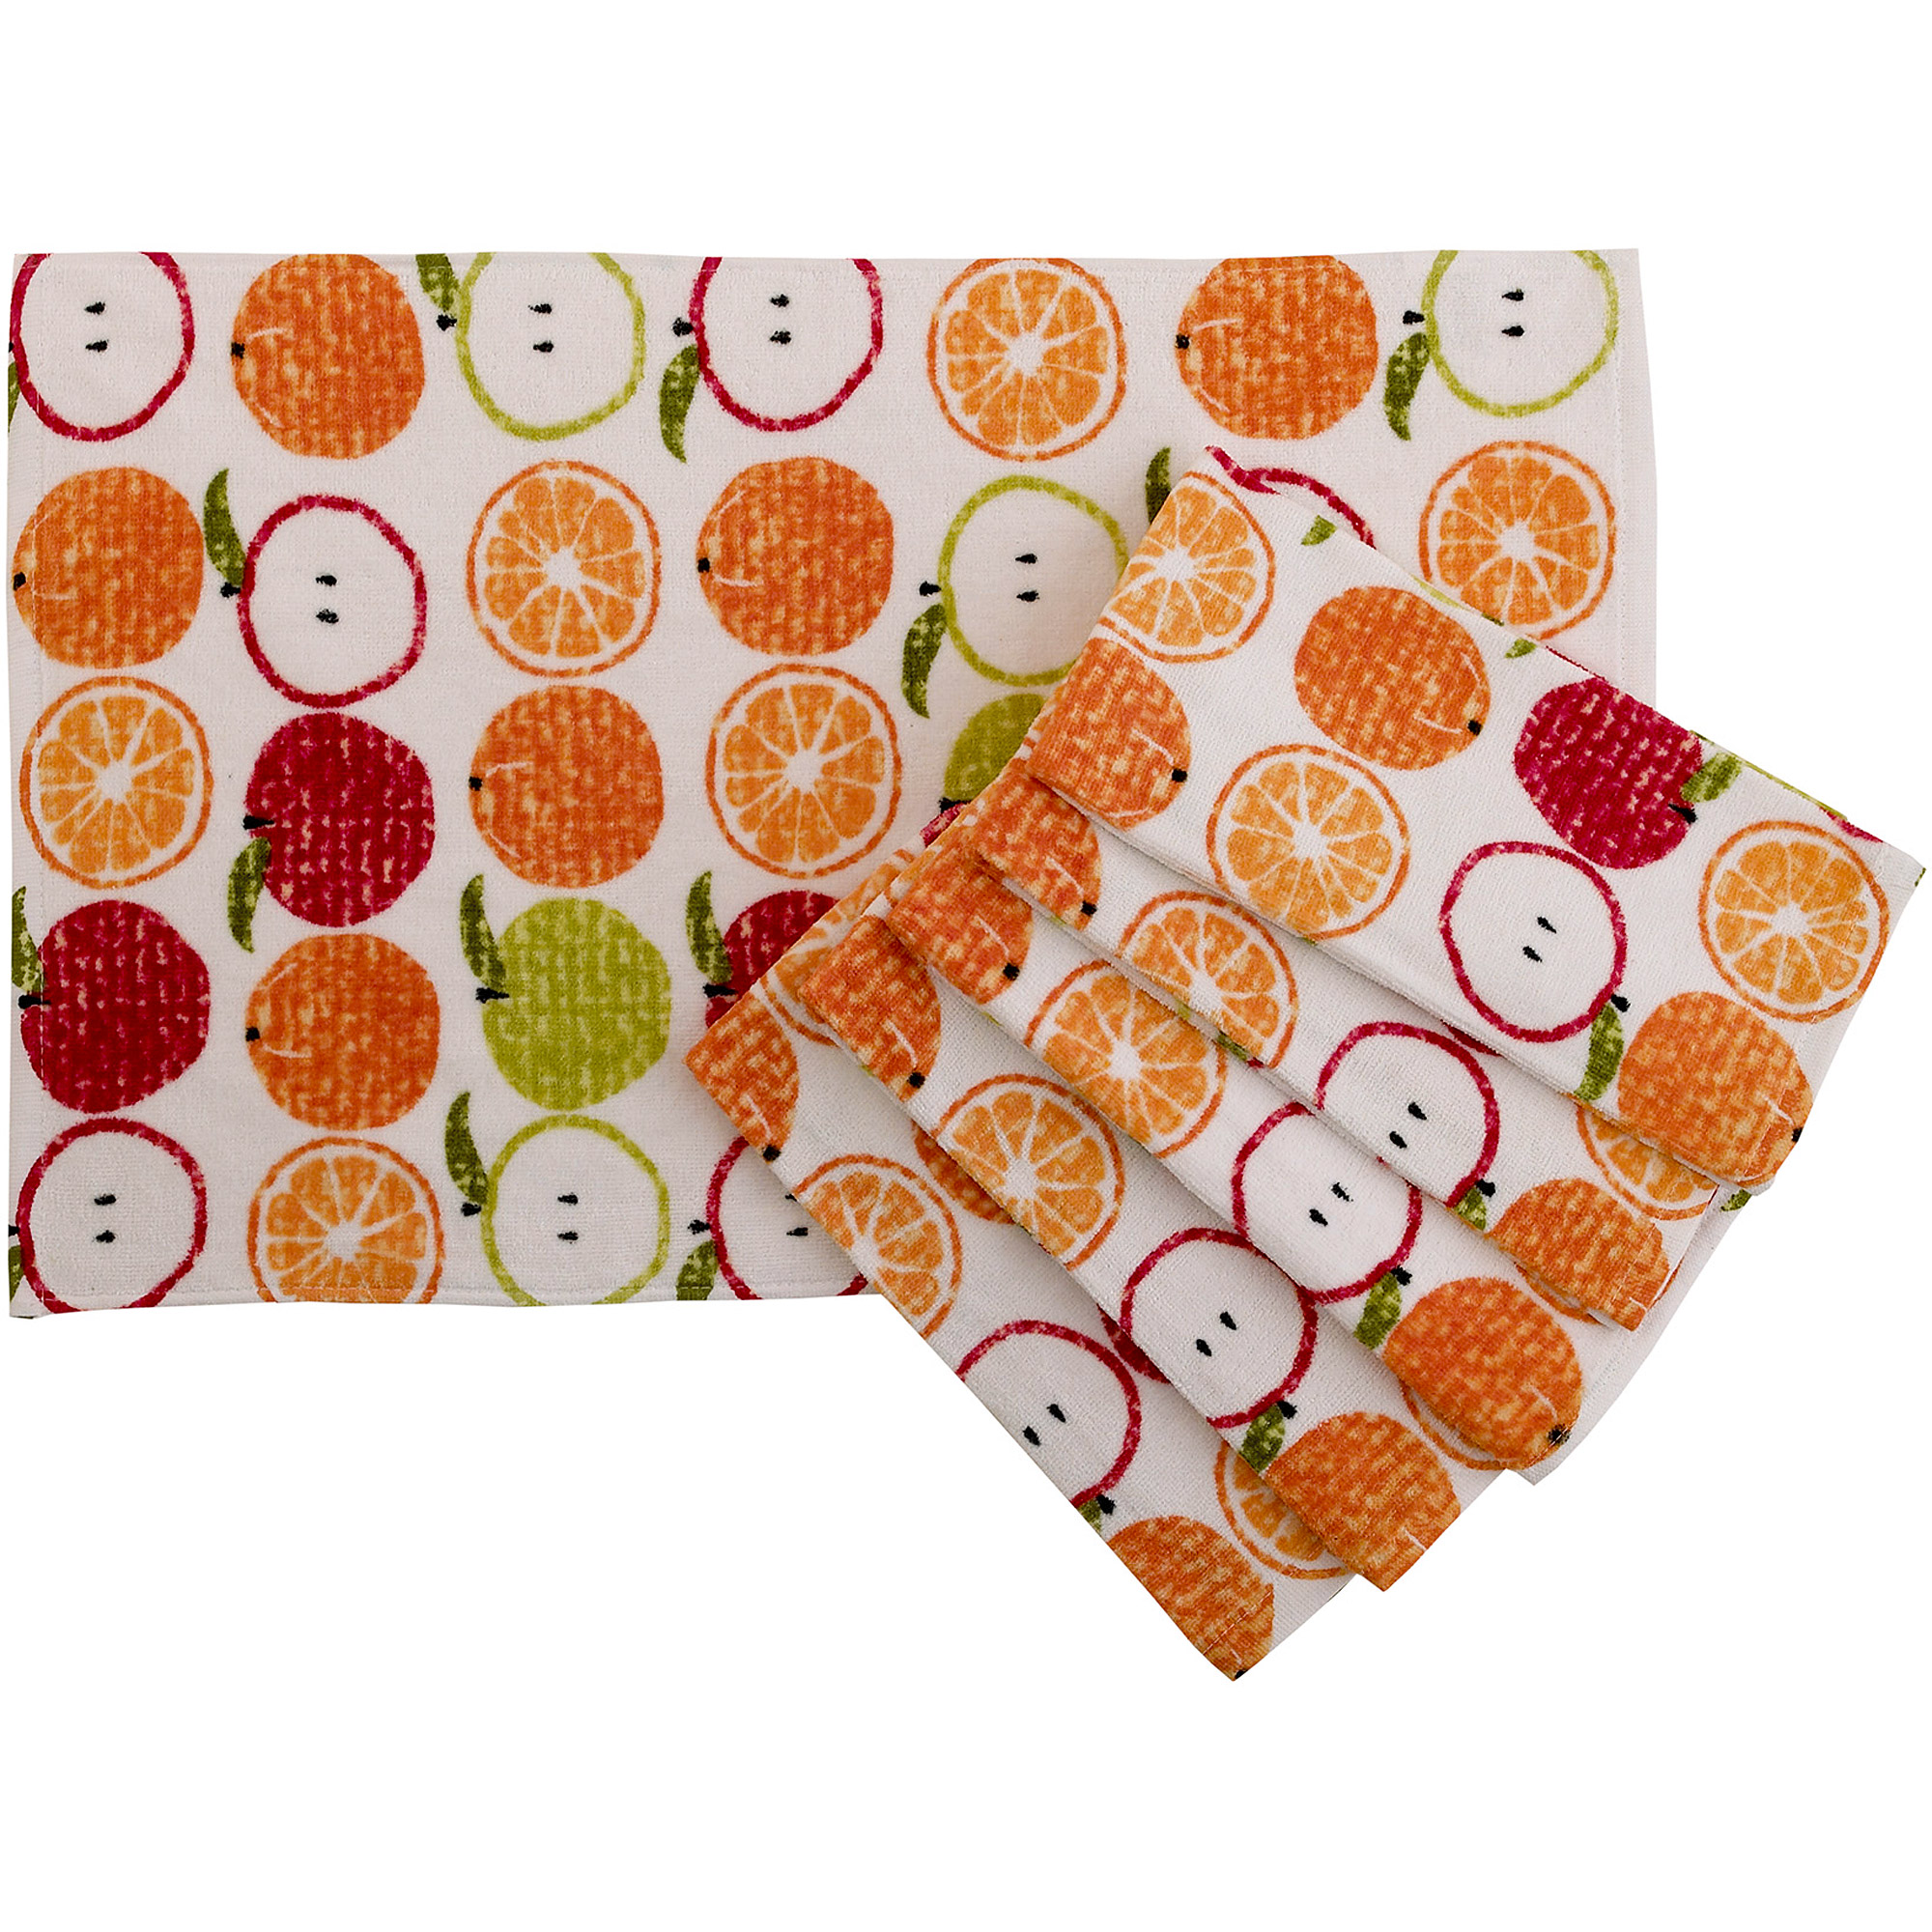 mainstays fruit kitchen towel, set of 6 - walmart